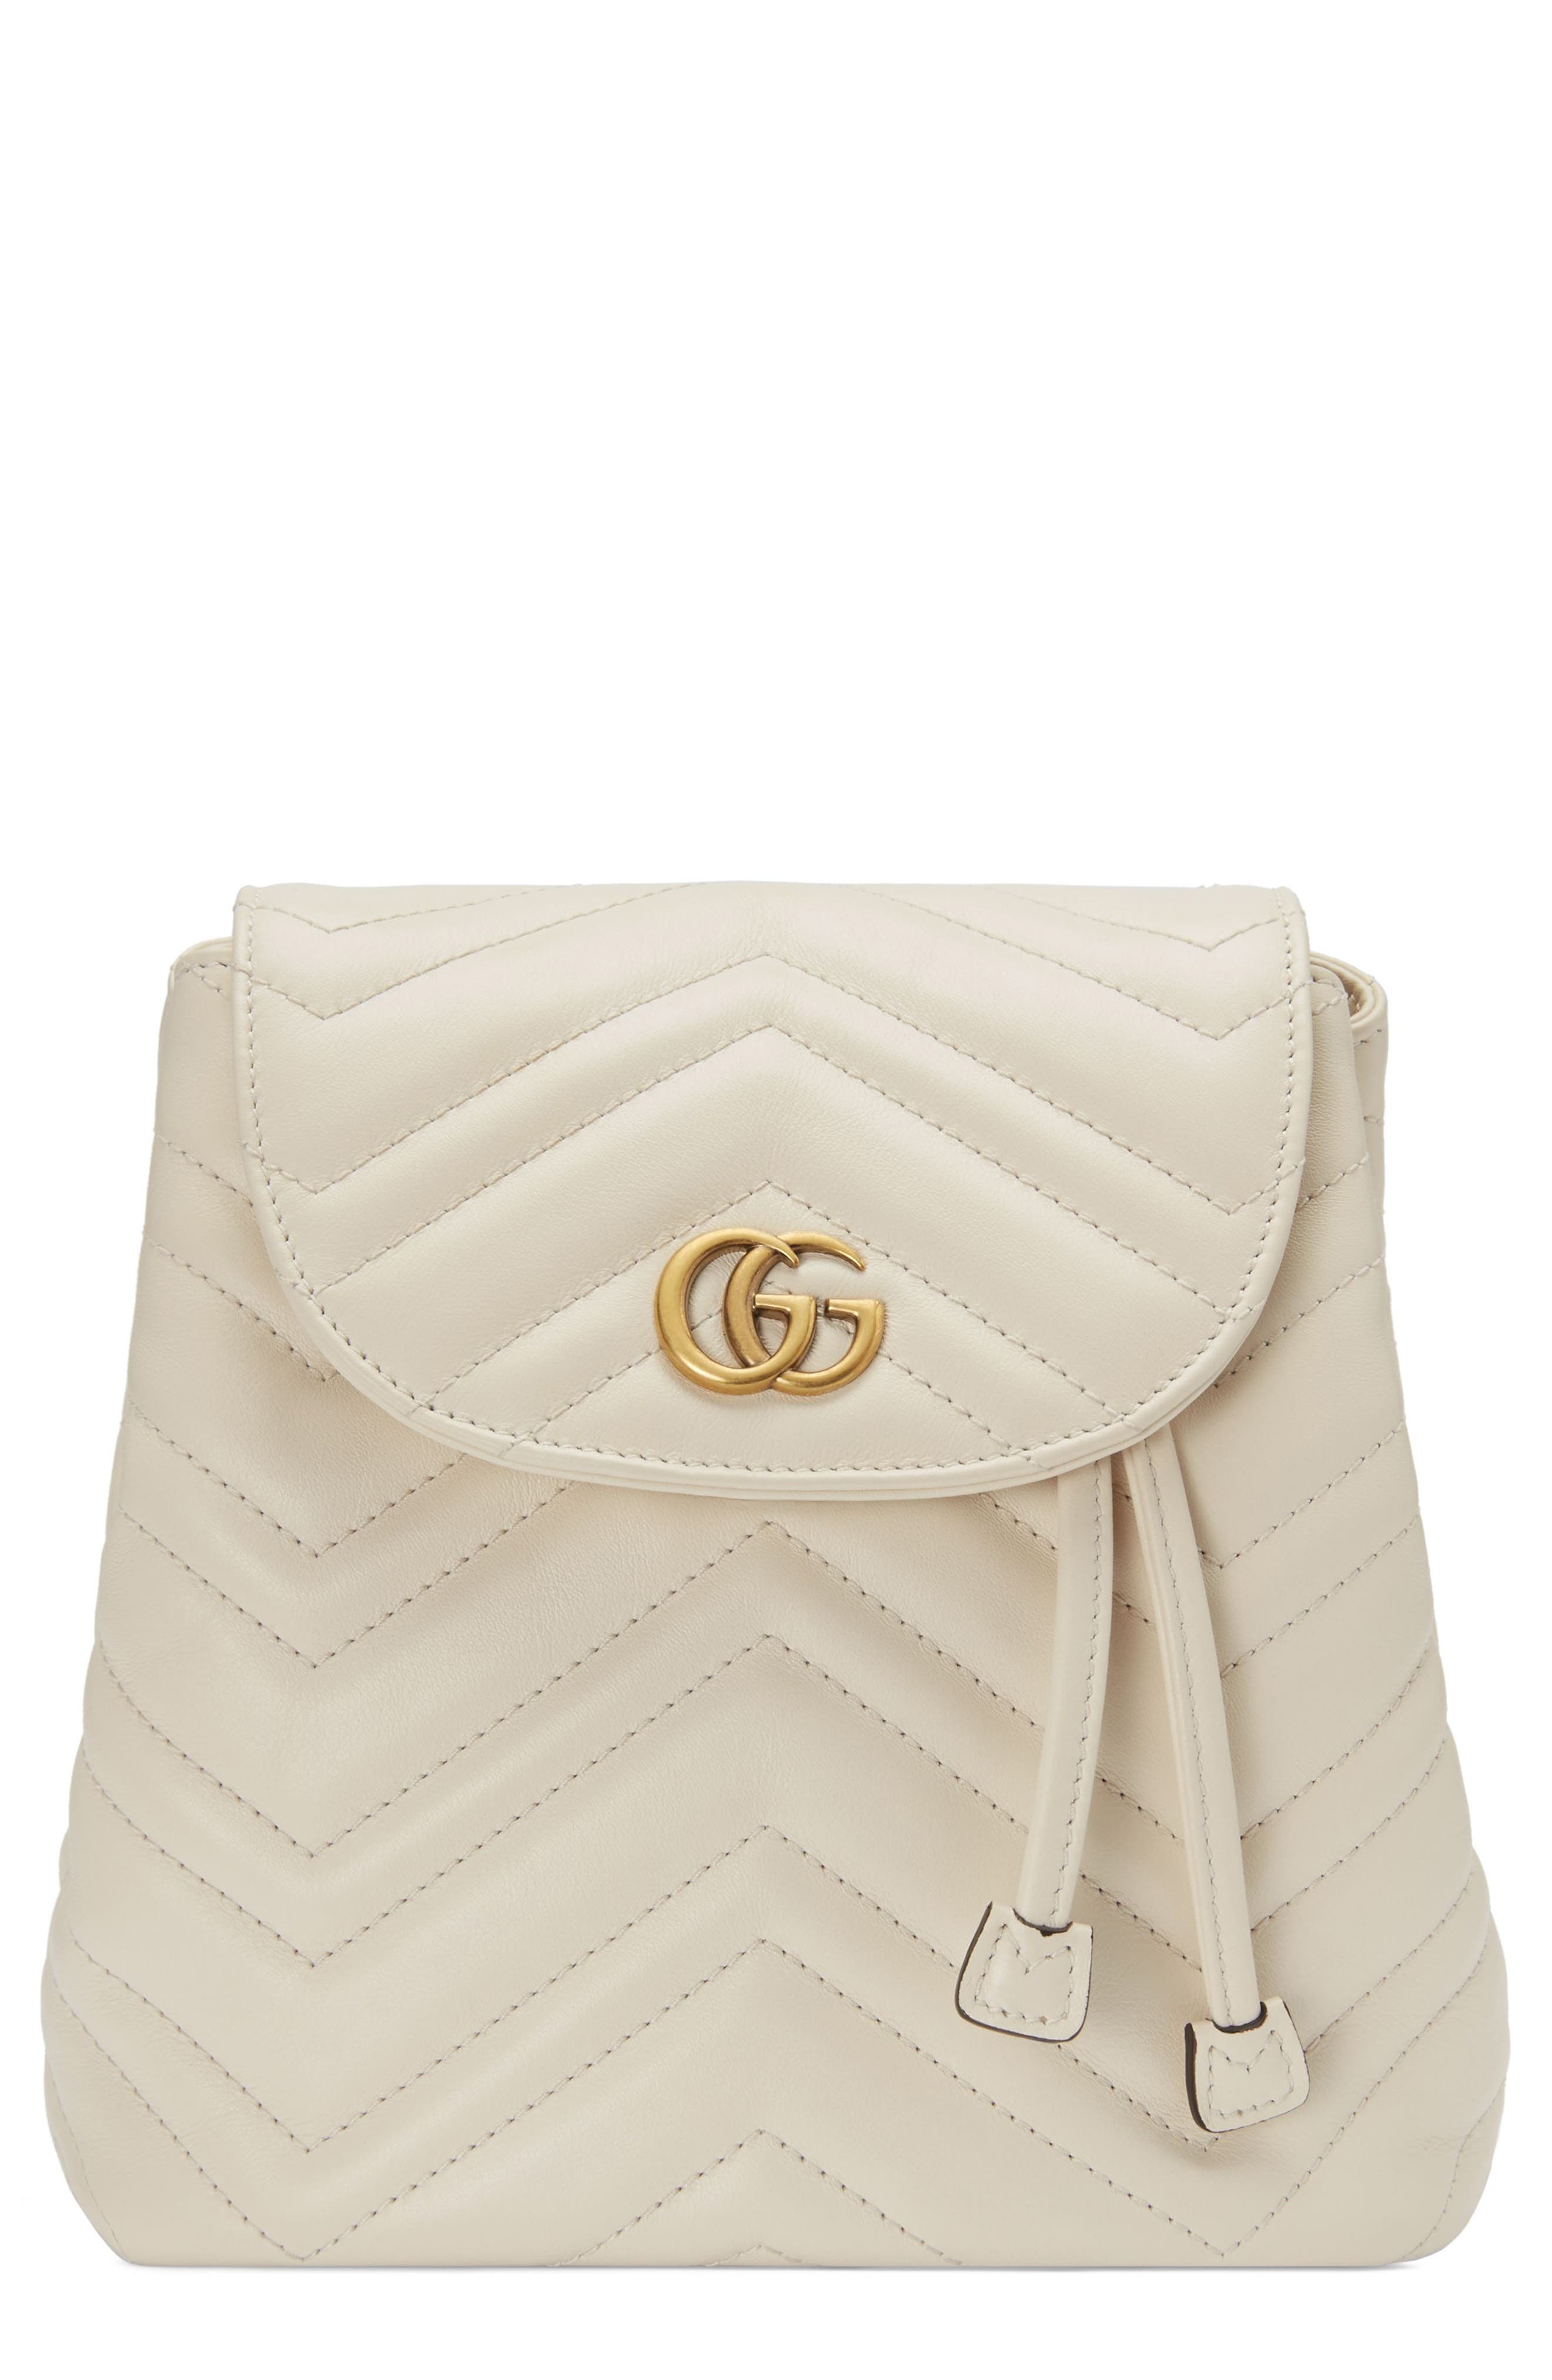 GG Marmont 2.0 Matelassé Leather Mini Backpack,                         Main,                         color, MYSTIC WHITE